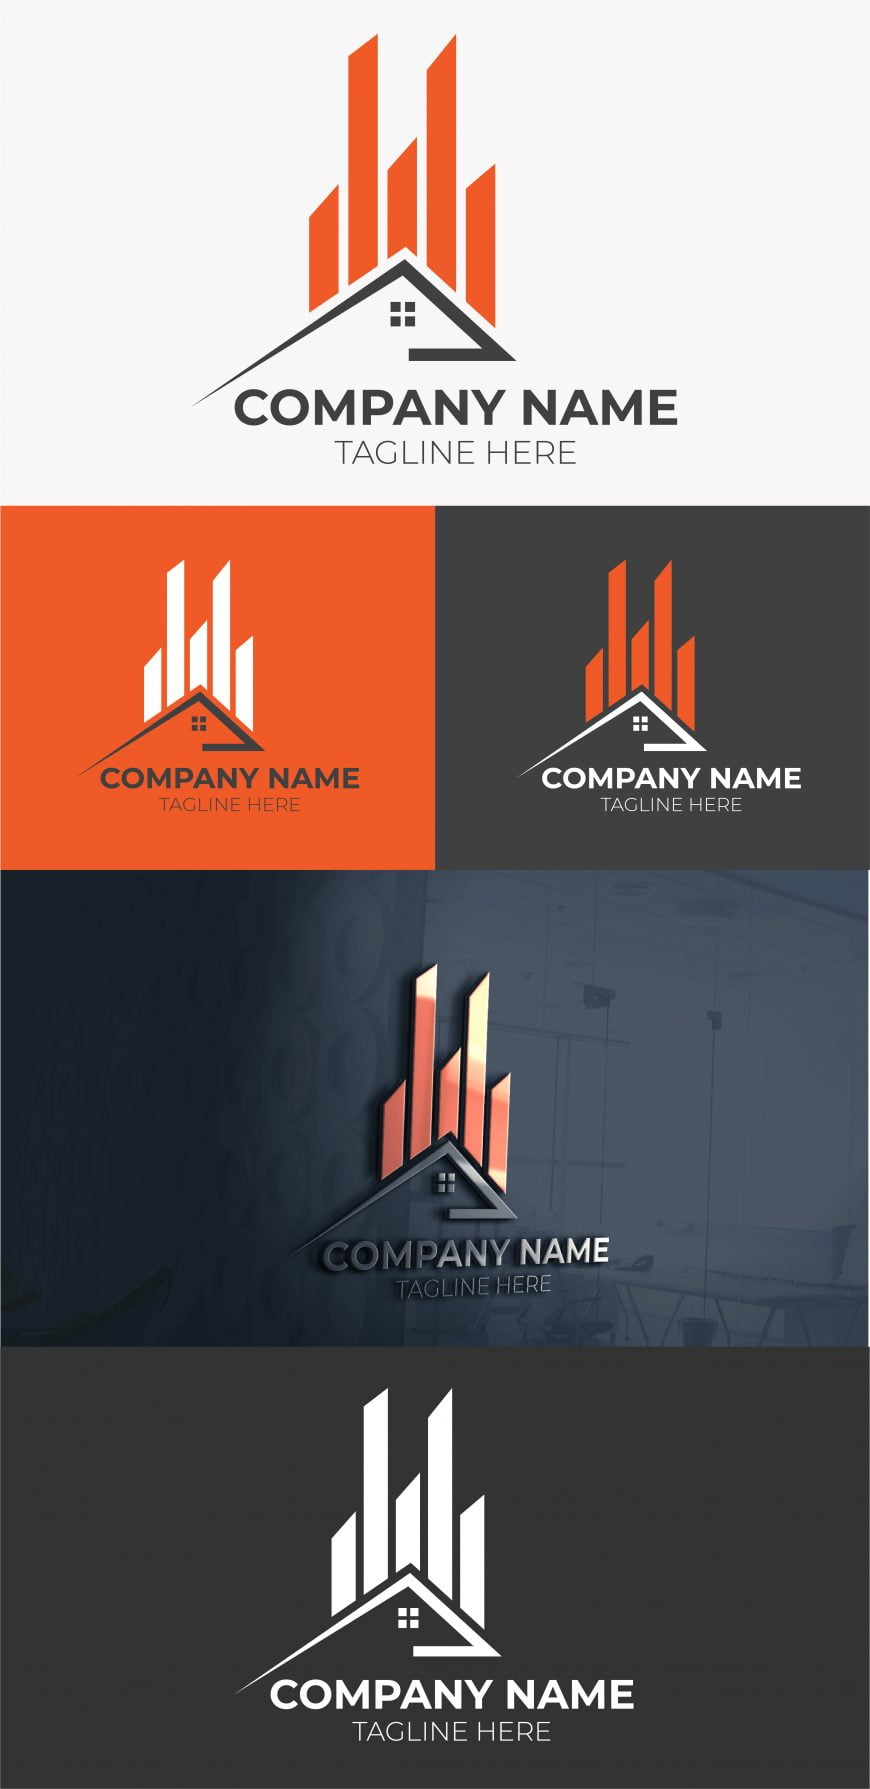 real-estate-logo-design-free-template-scaled